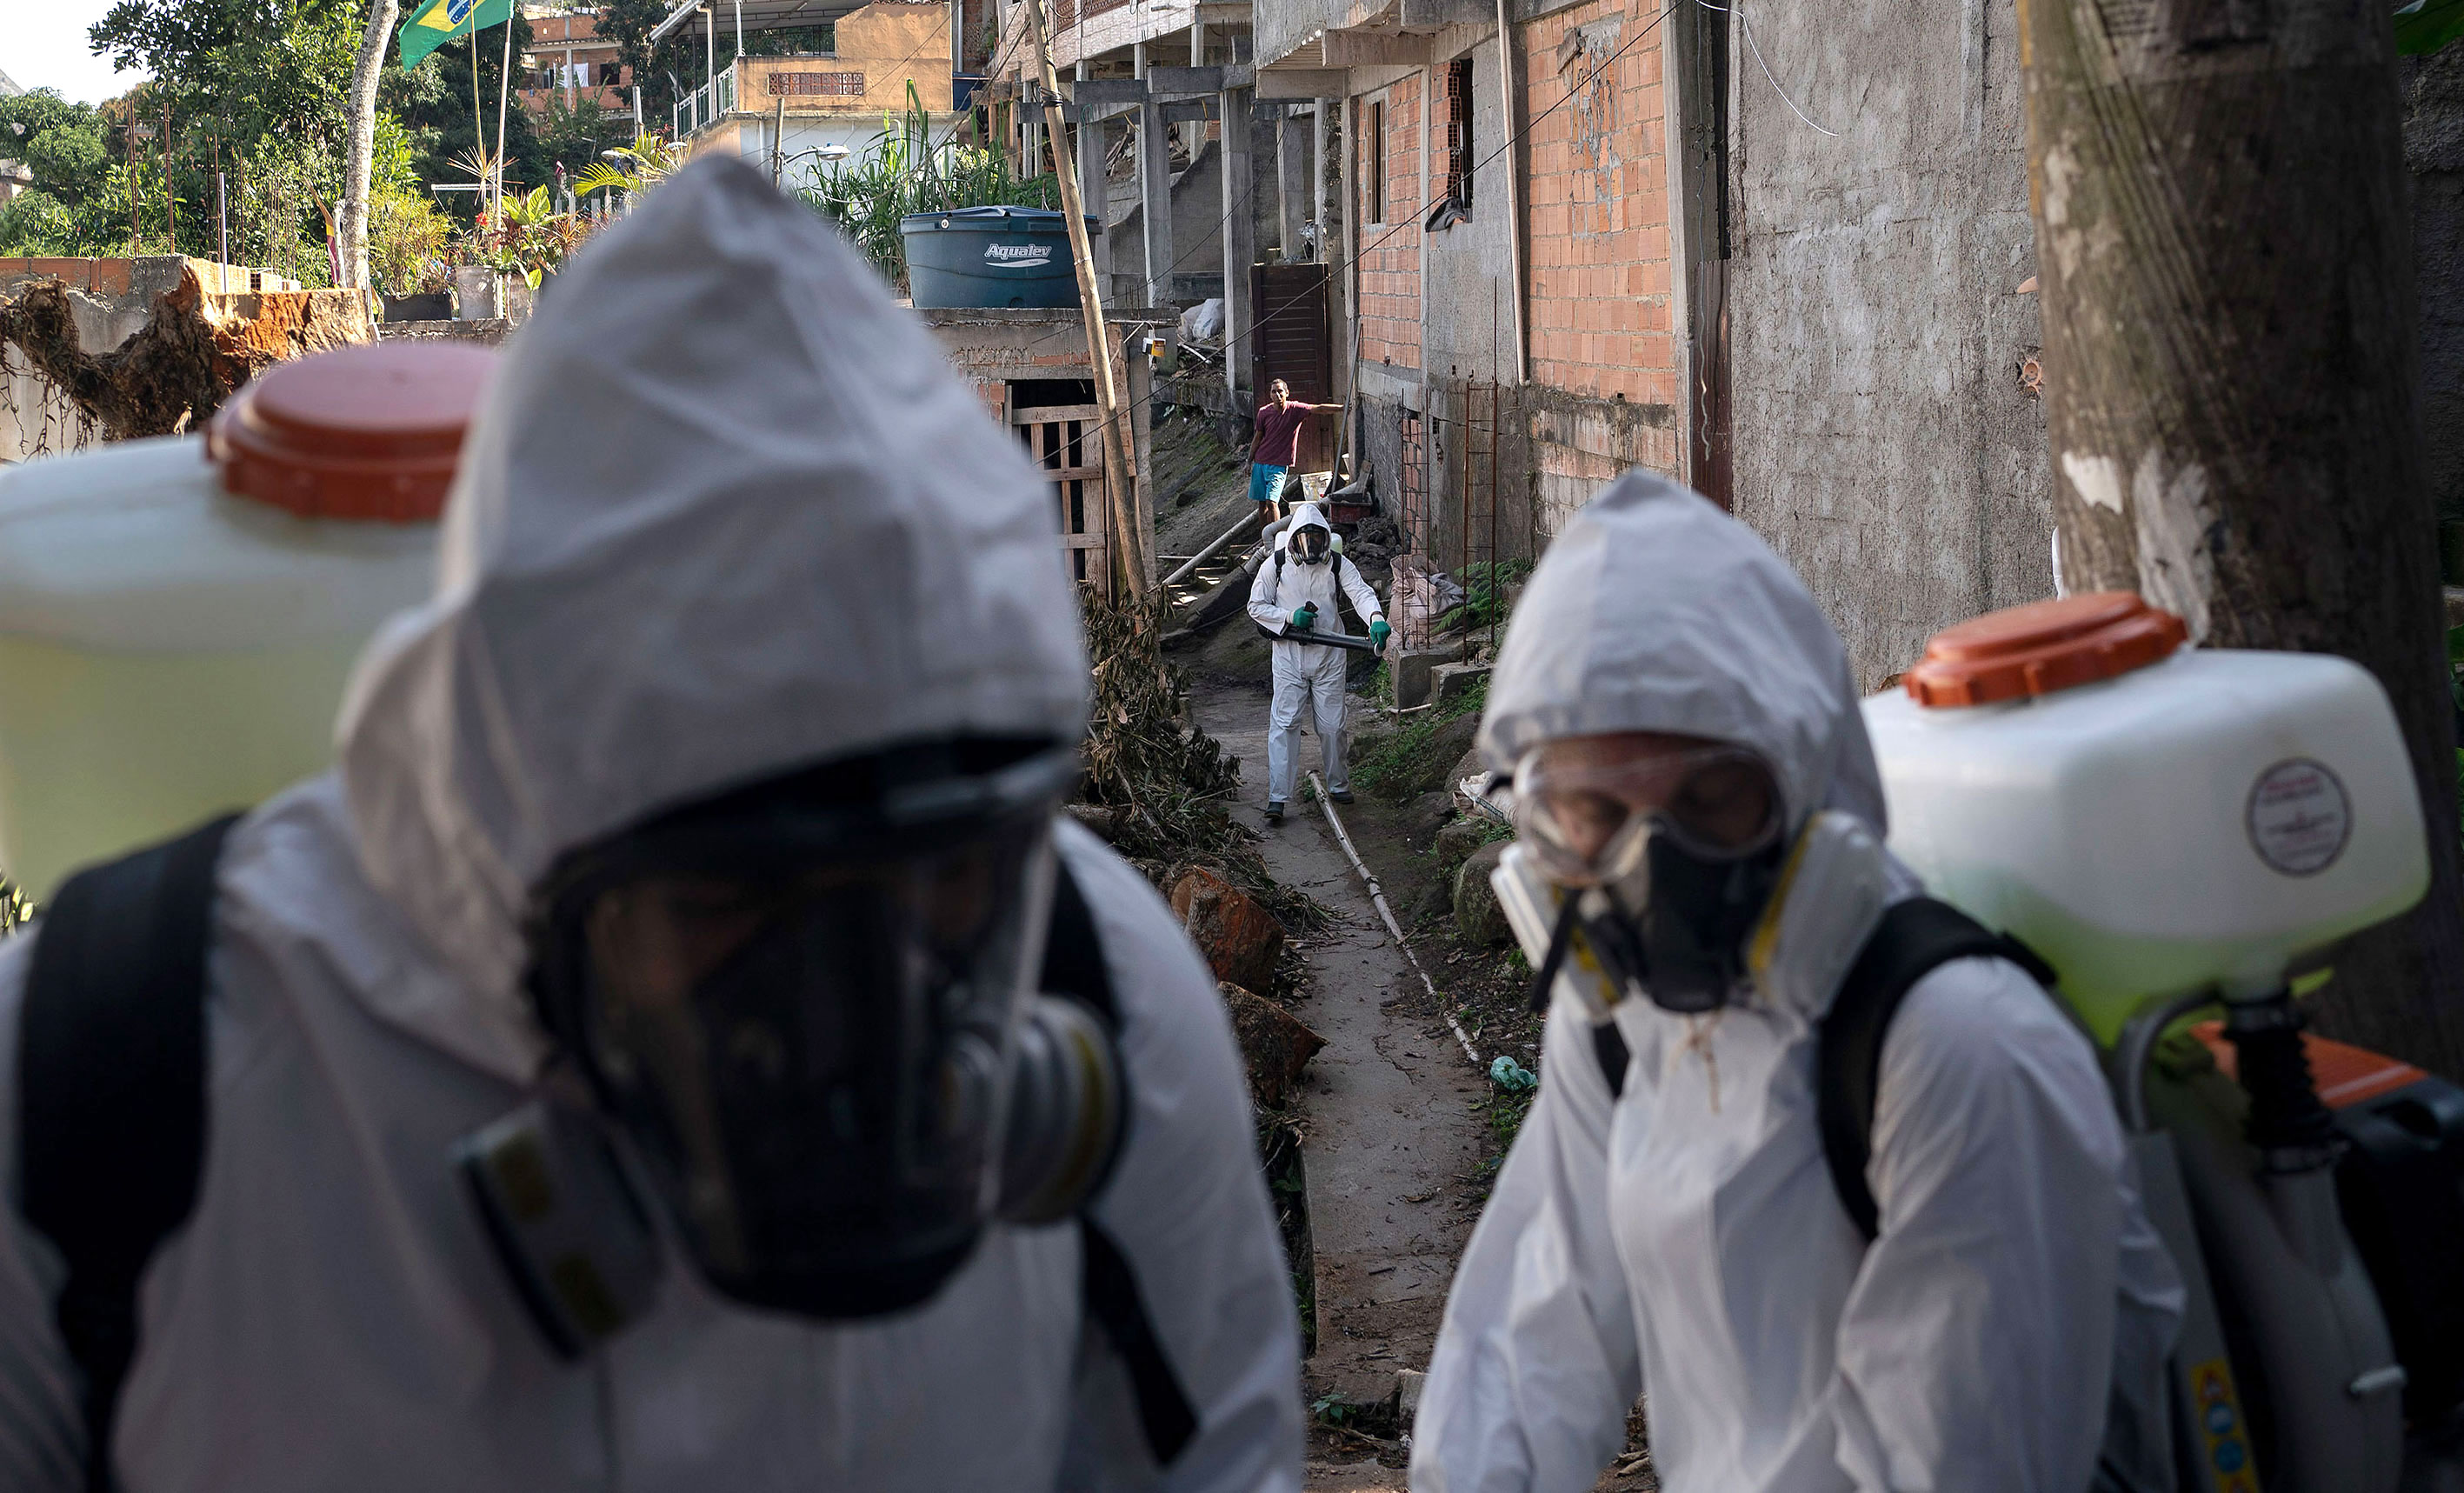 Volunteers spray disinfectant in an alleyway in an effort to contain the spread of coronavirus on July 12 in Rio de Janeiro, Brazil.